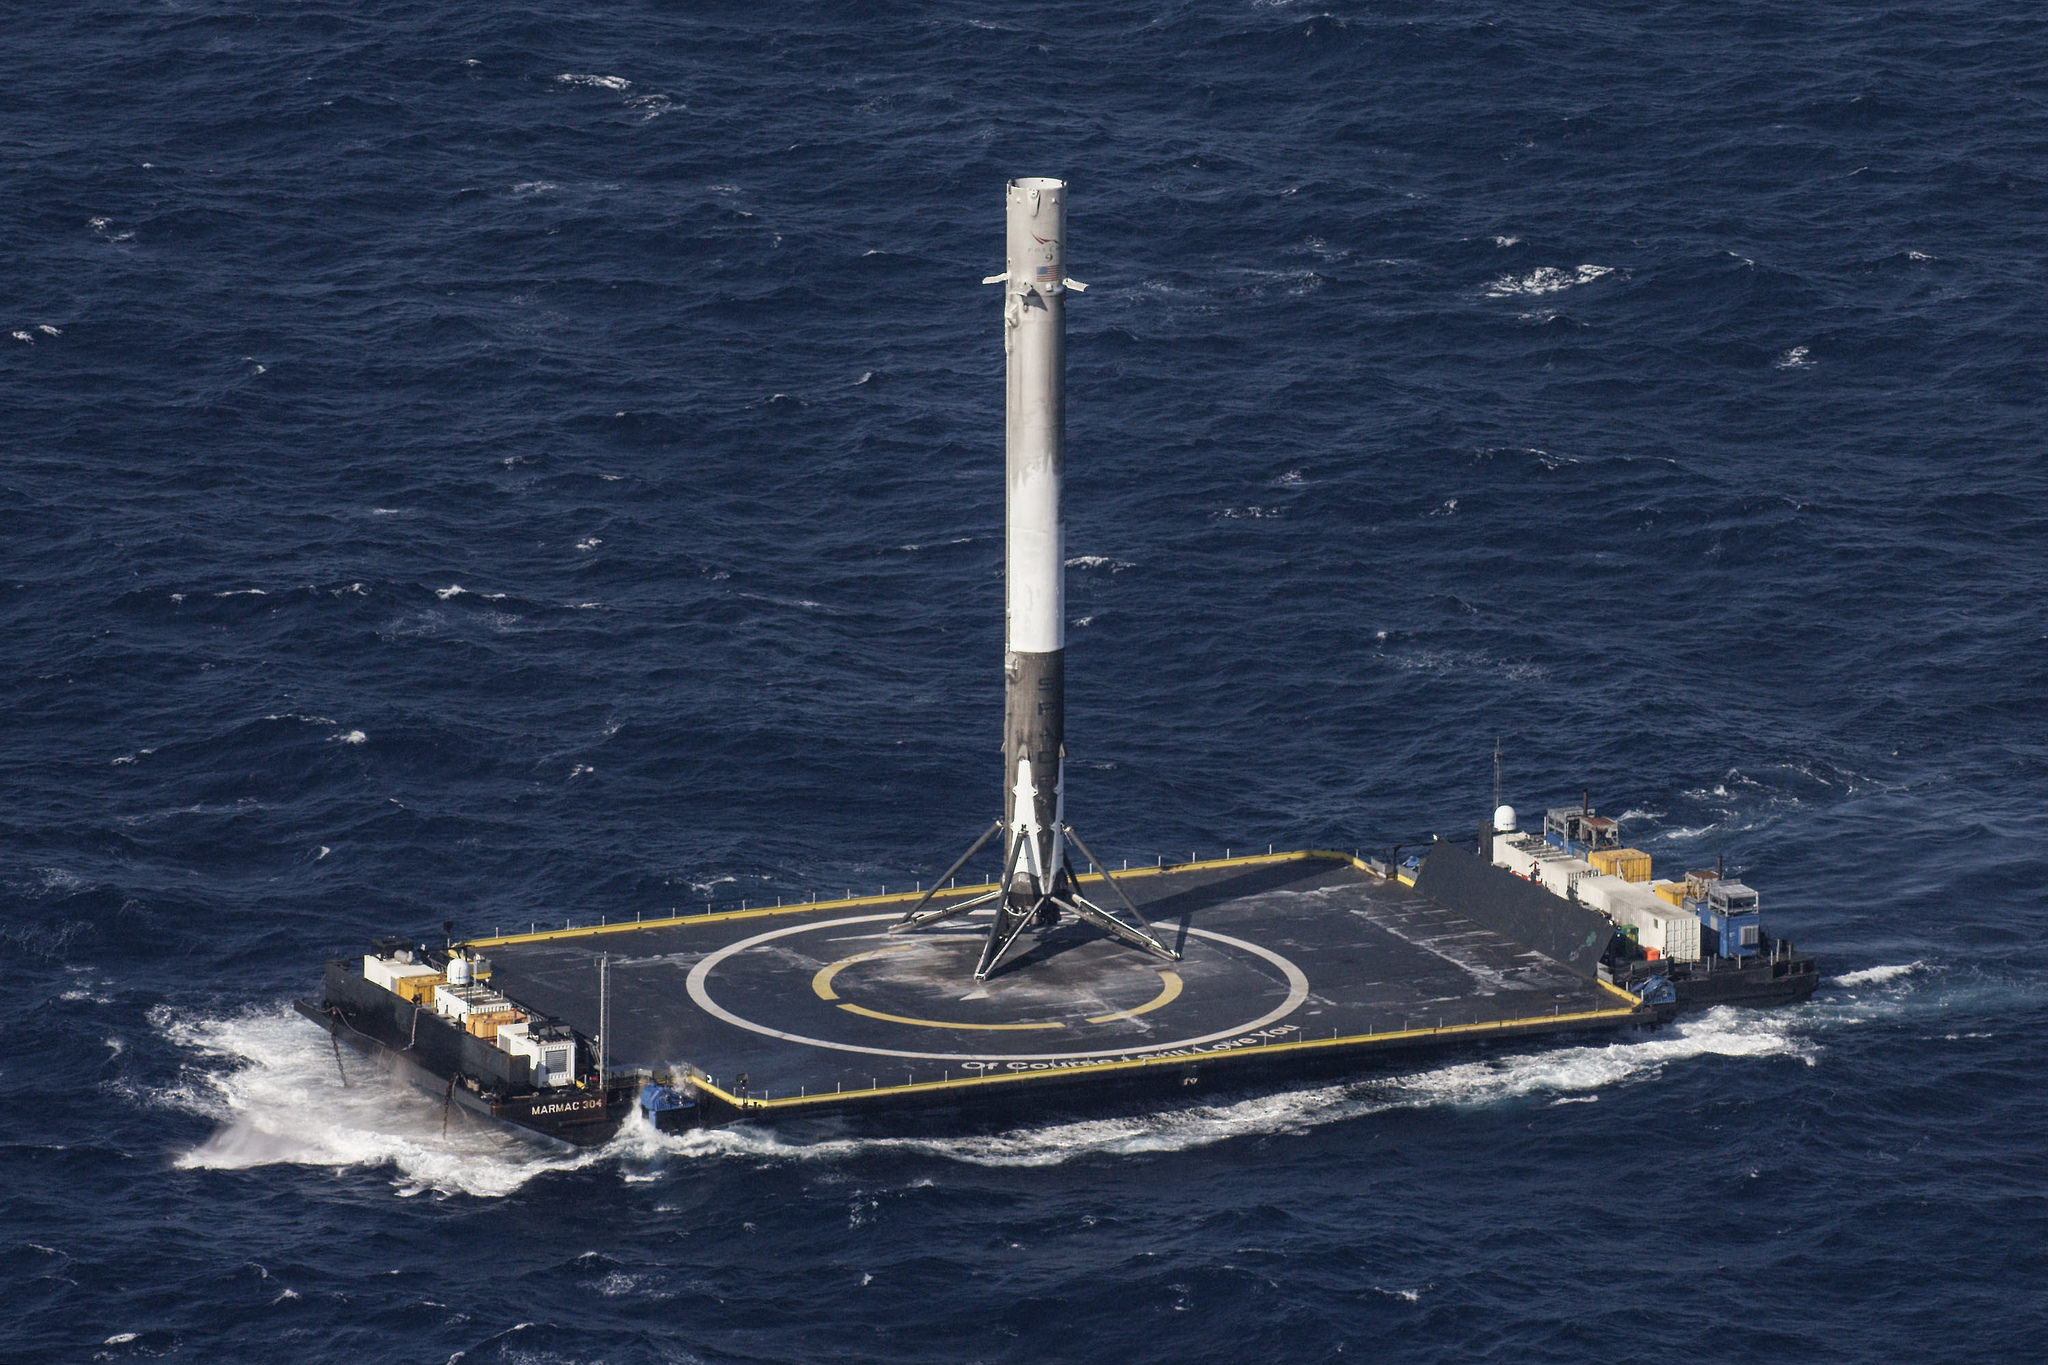 spacex-crs-8-photo-4